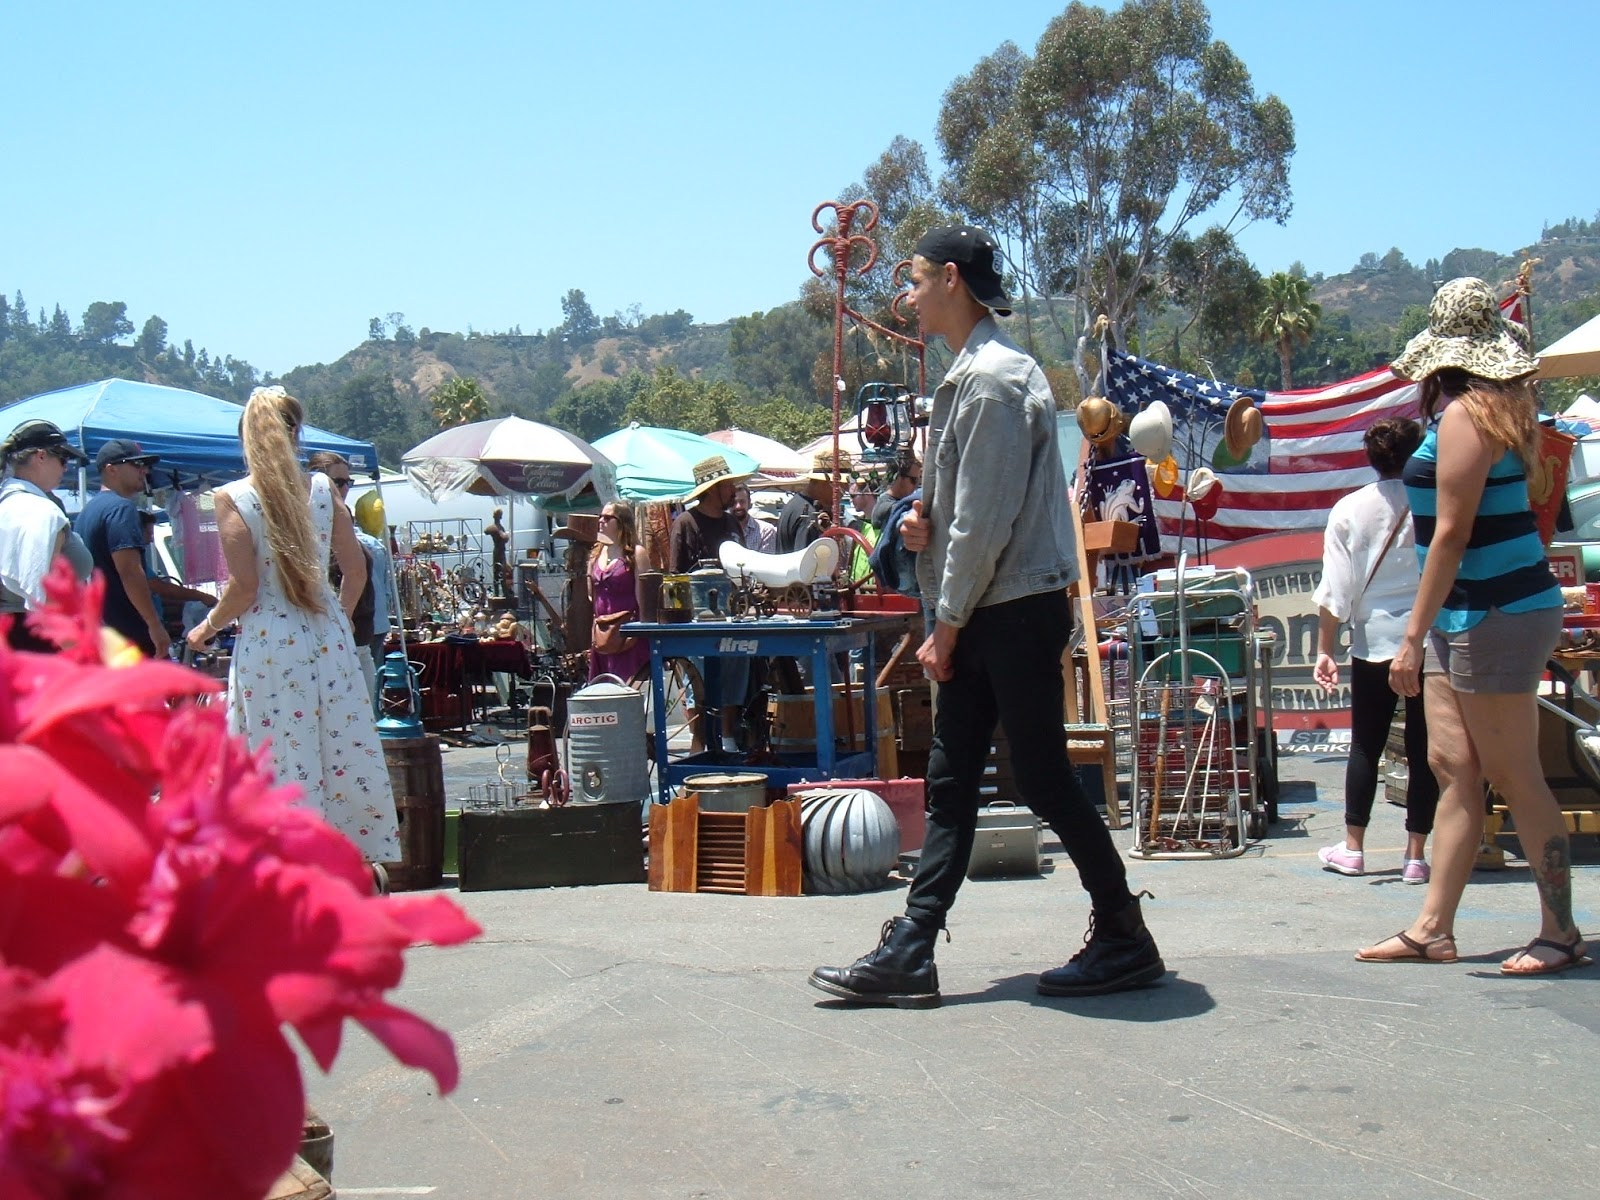 spanky luvs vintage a great day at the rose bowl pasadena swap meet and i 39 m not into haggling. Black Bedroom Furniture Sets. Home Design Ideas